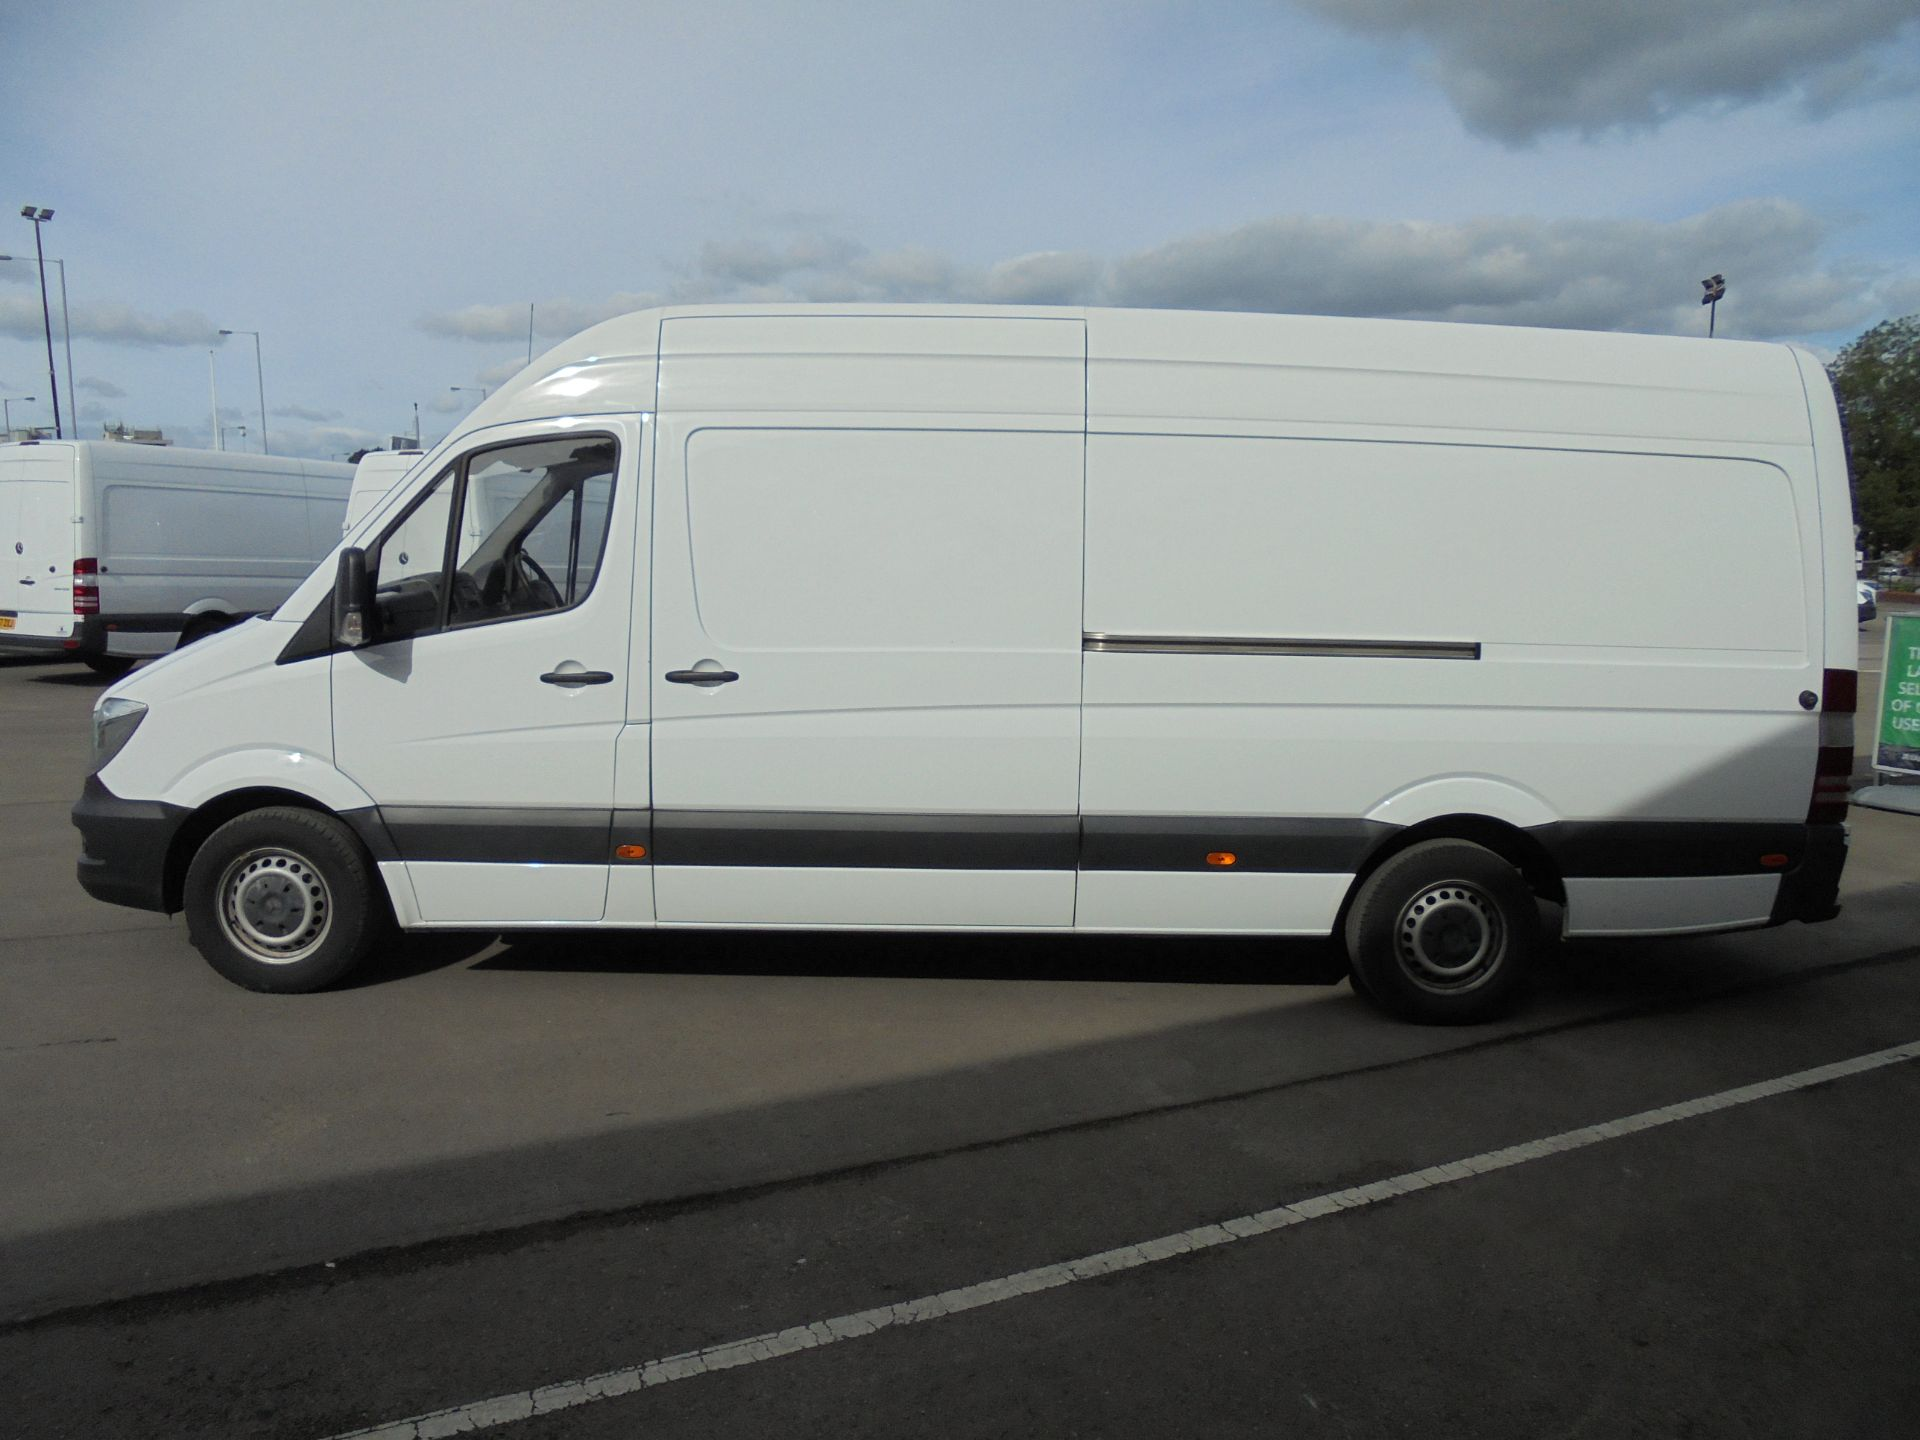 2017 Mercedes-Benz Sprinter 3.5T High Roof Van LWB (KW17JCO) Image 4